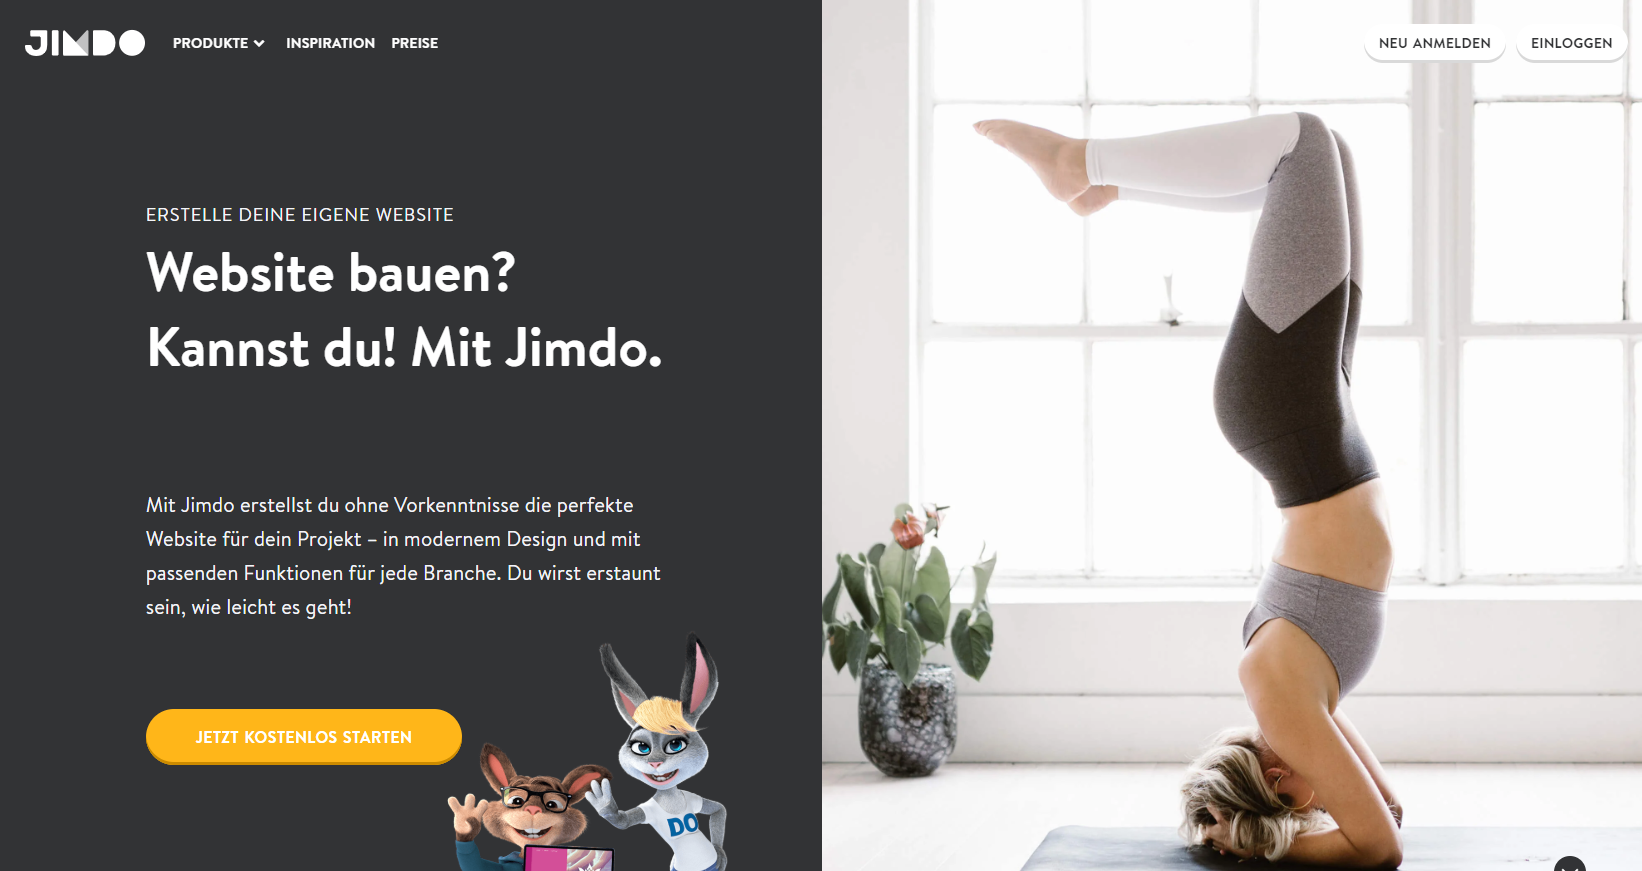 Blog-Plattform jimdo